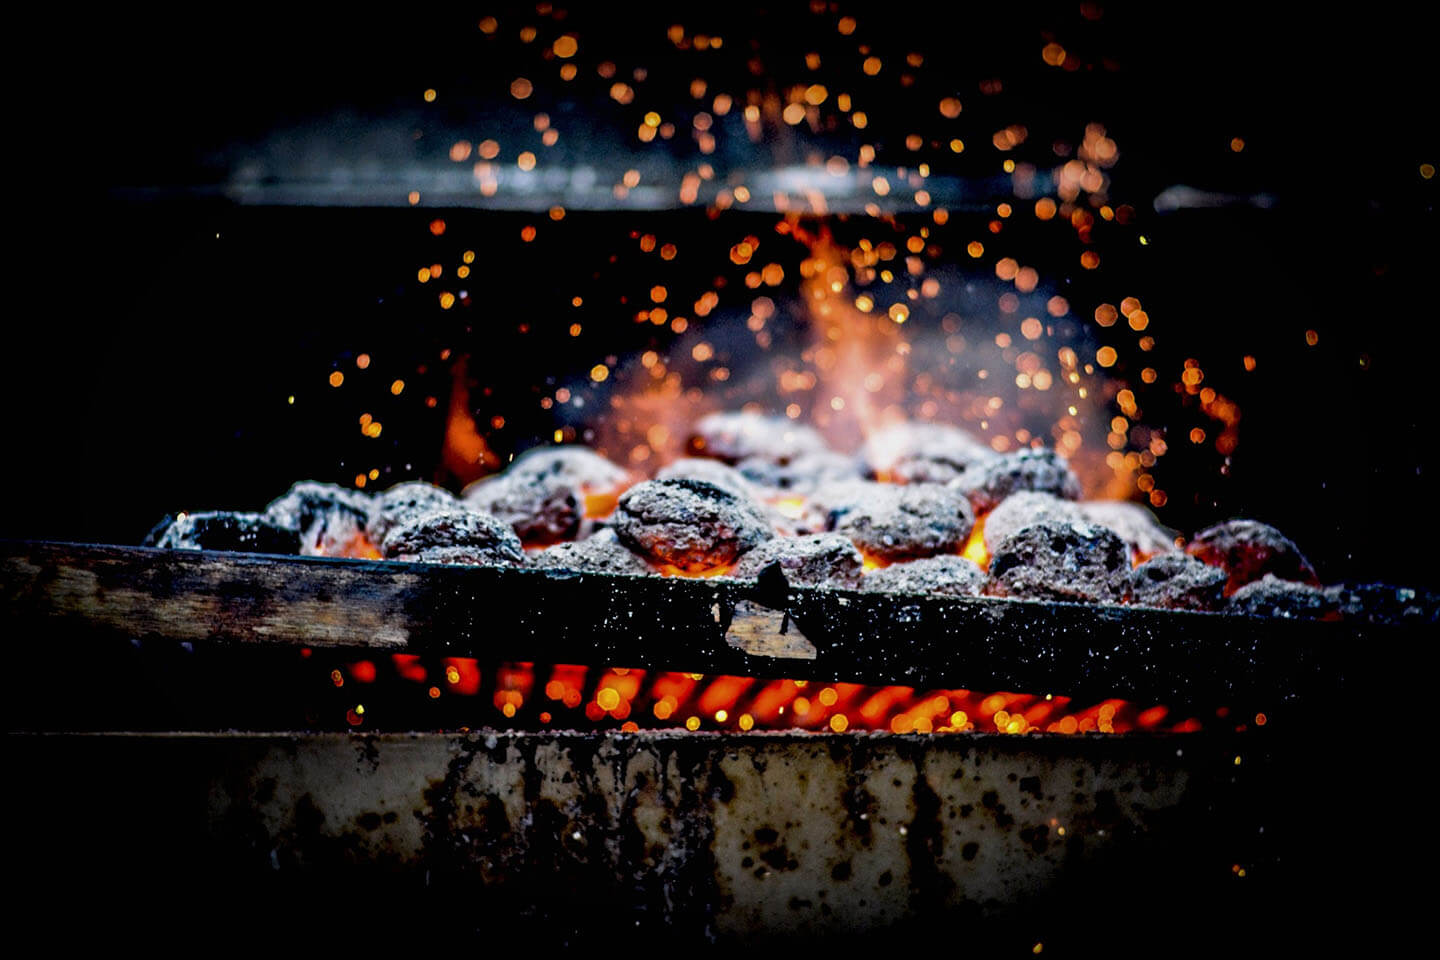 Charcoal burning into bright embers on a grill grate.